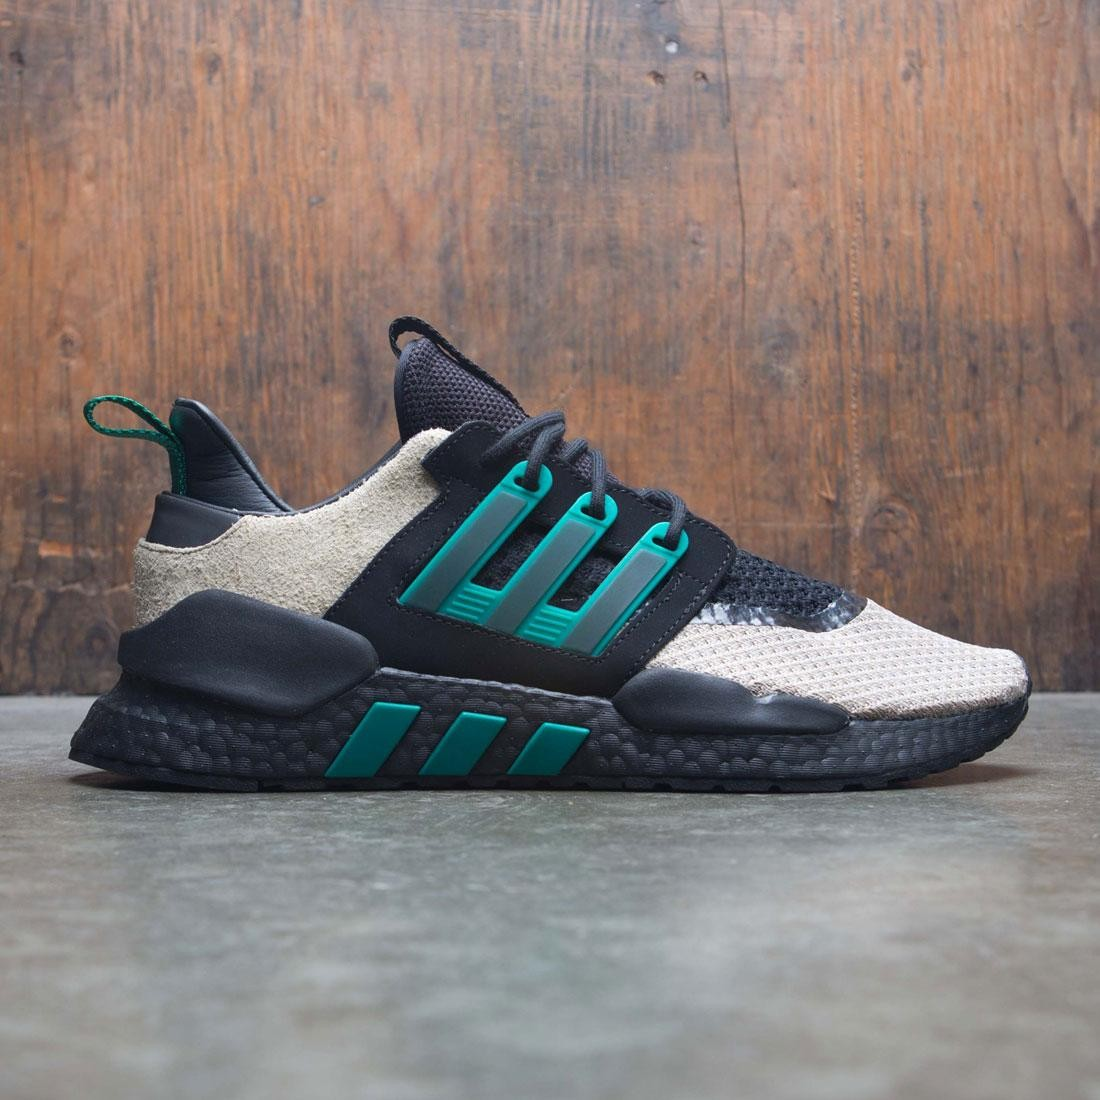 purchase cheap c2da5 ca04a ... Adidas Consortium x Packer Shoes Men EQT 9118 (black sub green blanch  cargo) attractive ...